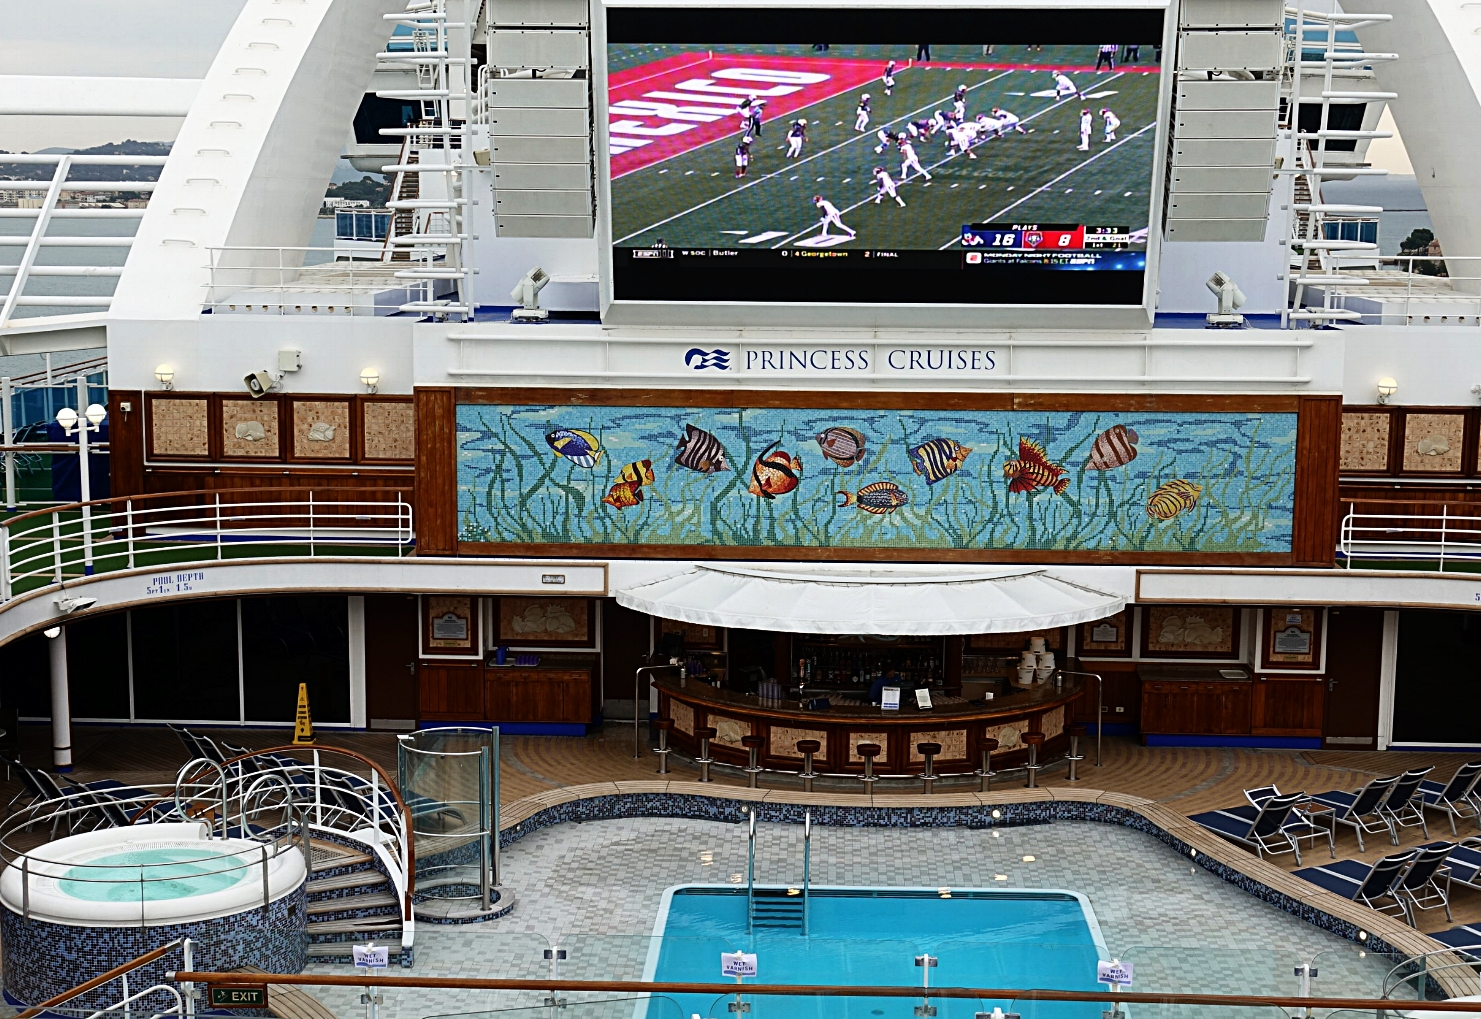 The Calypso pool, the smaller of the two mid-ships pools.